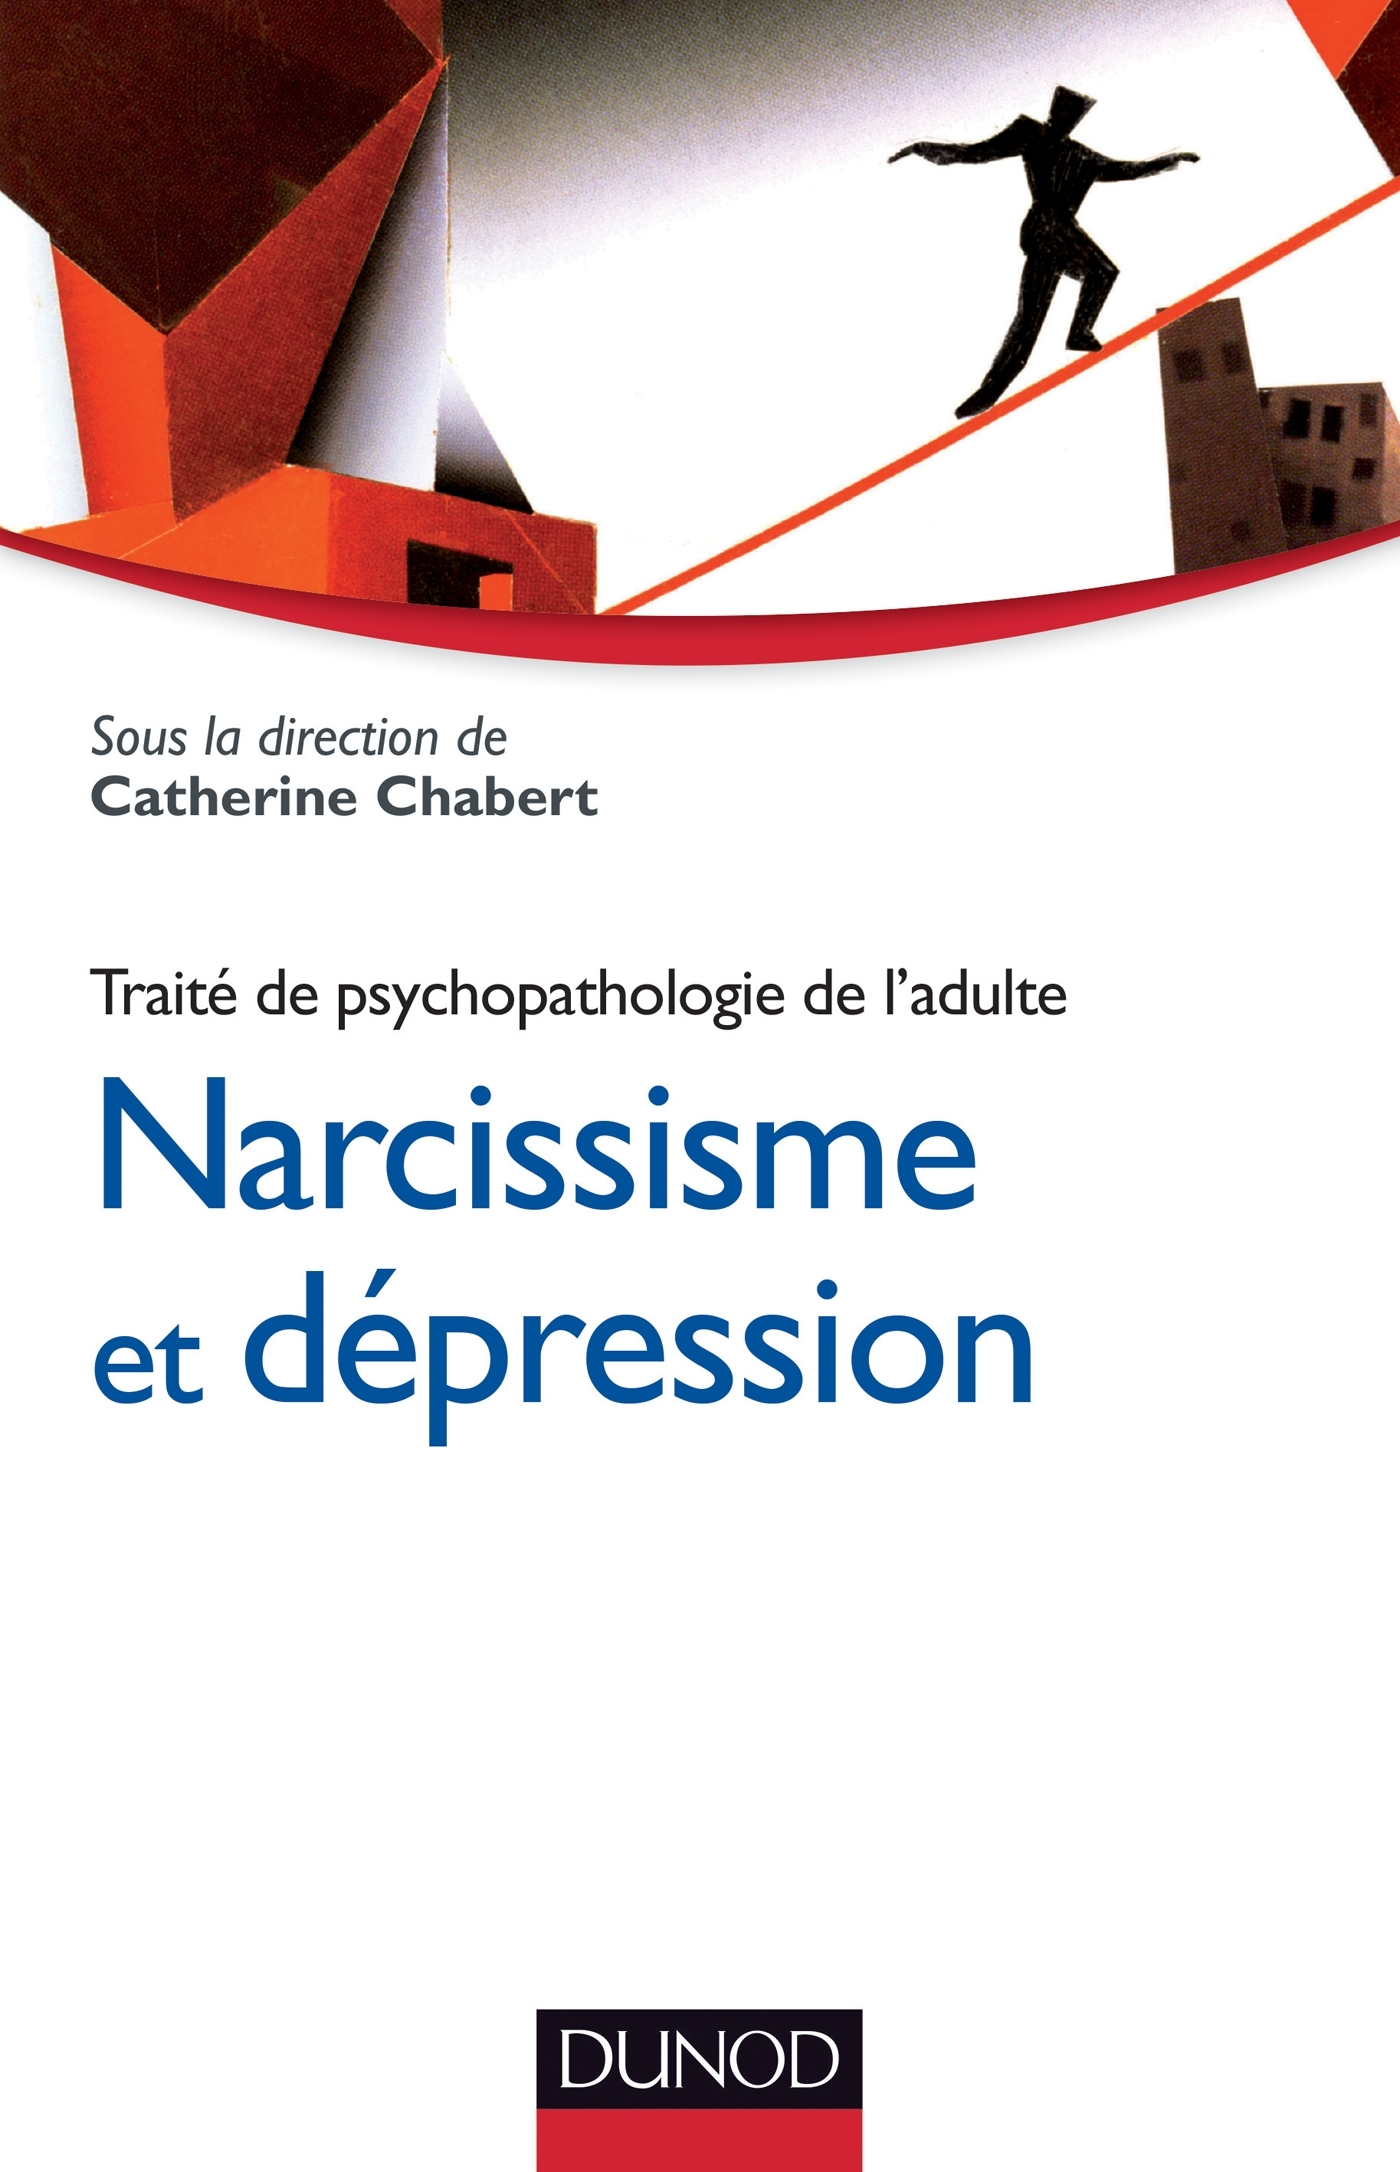 NARCISSISME ET DEPRESSION - TRAITE DE PSYCHOPATHOLOGIE DE L'ADULTE